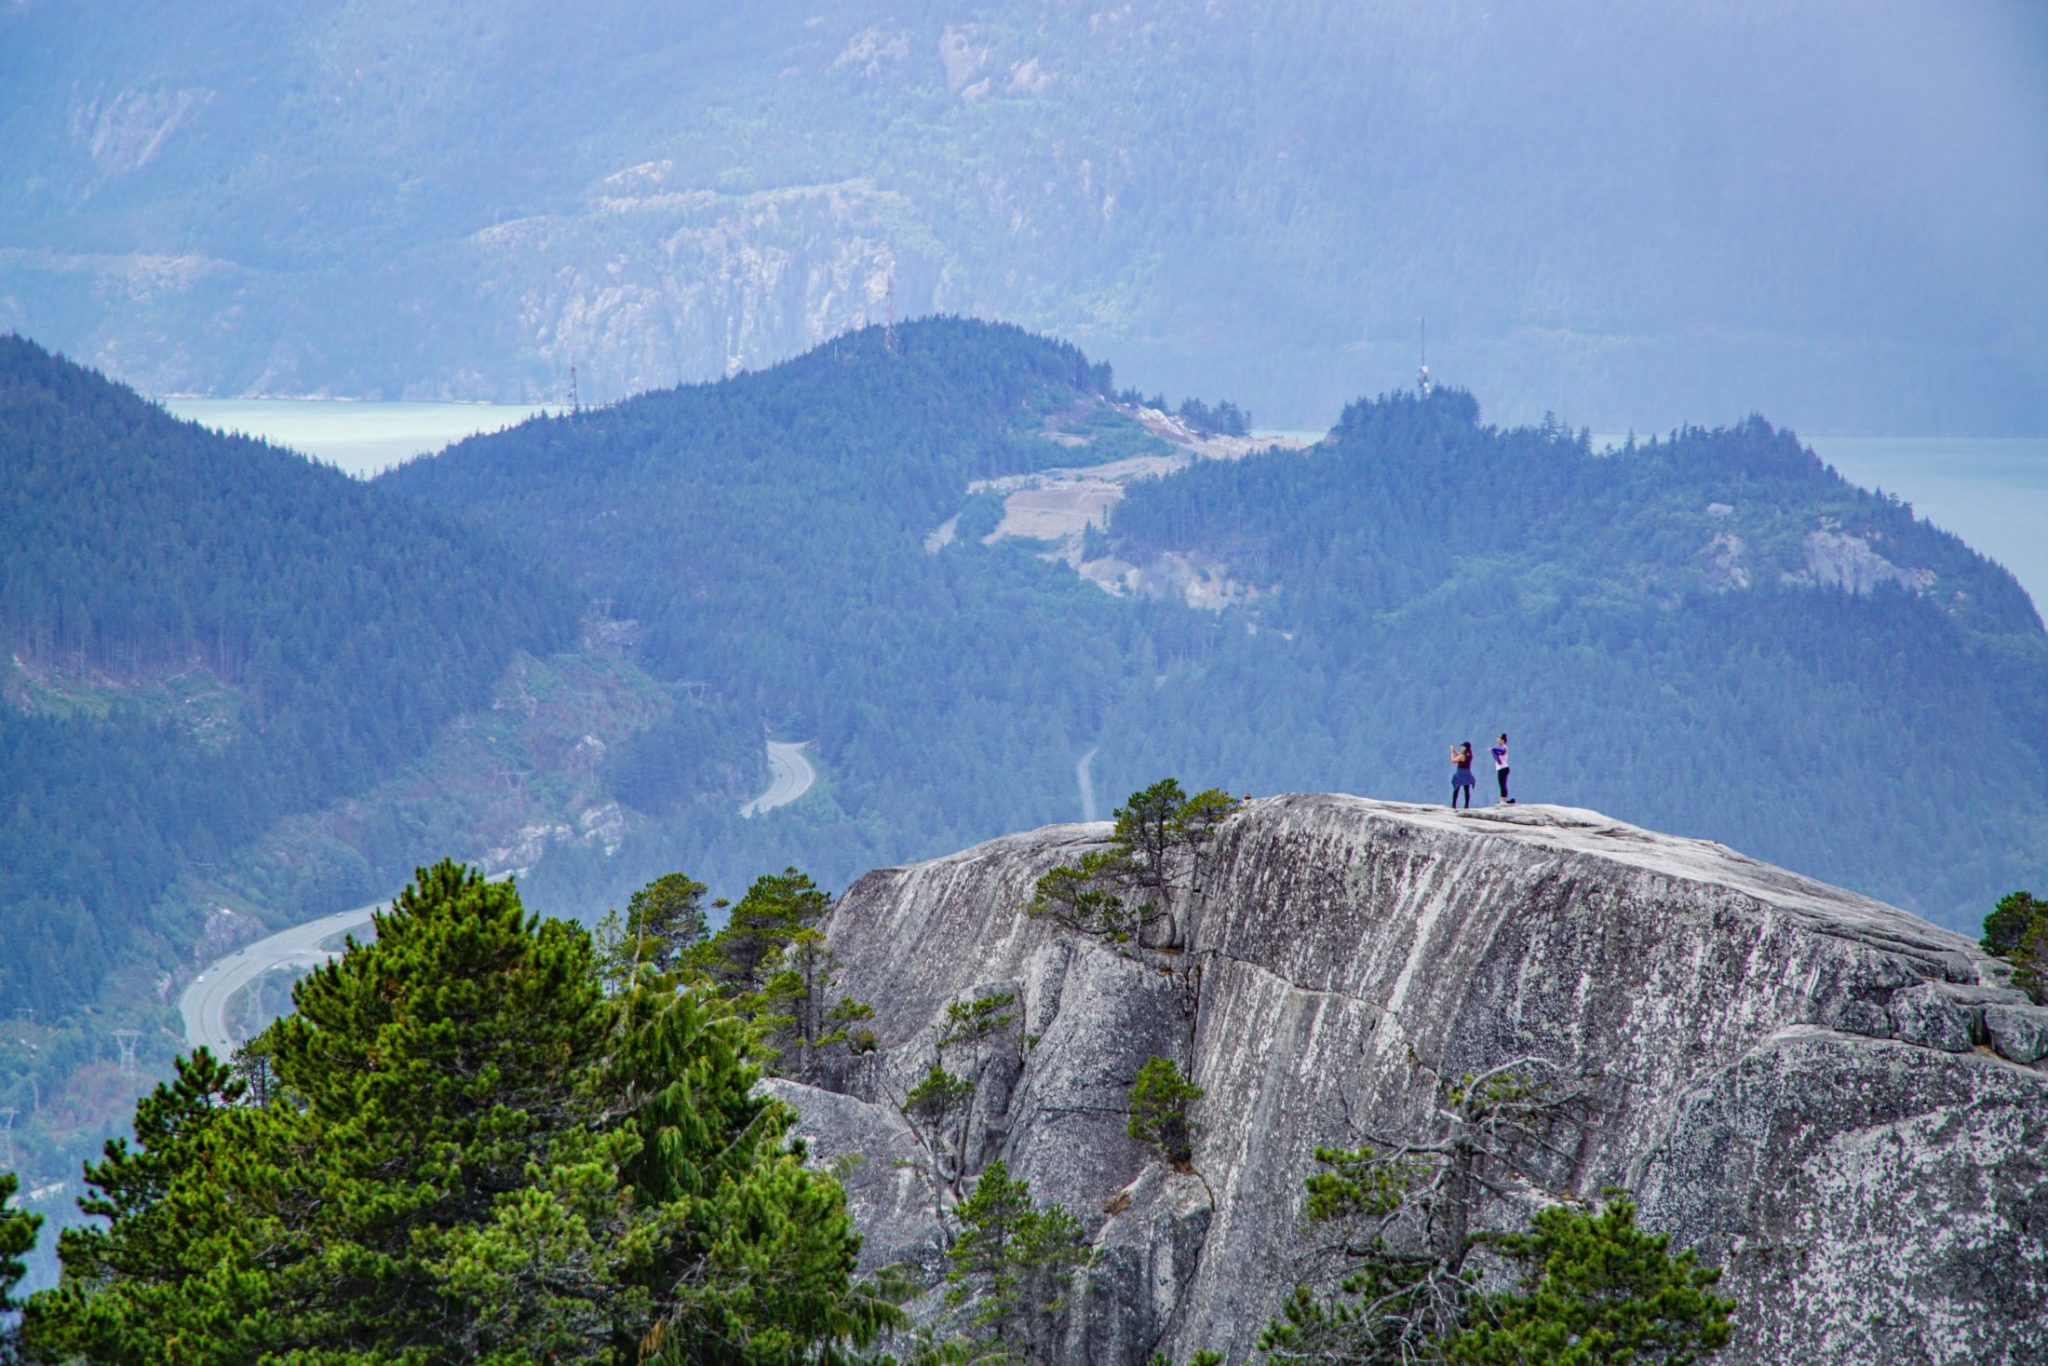 The Chief overlooking Squamish